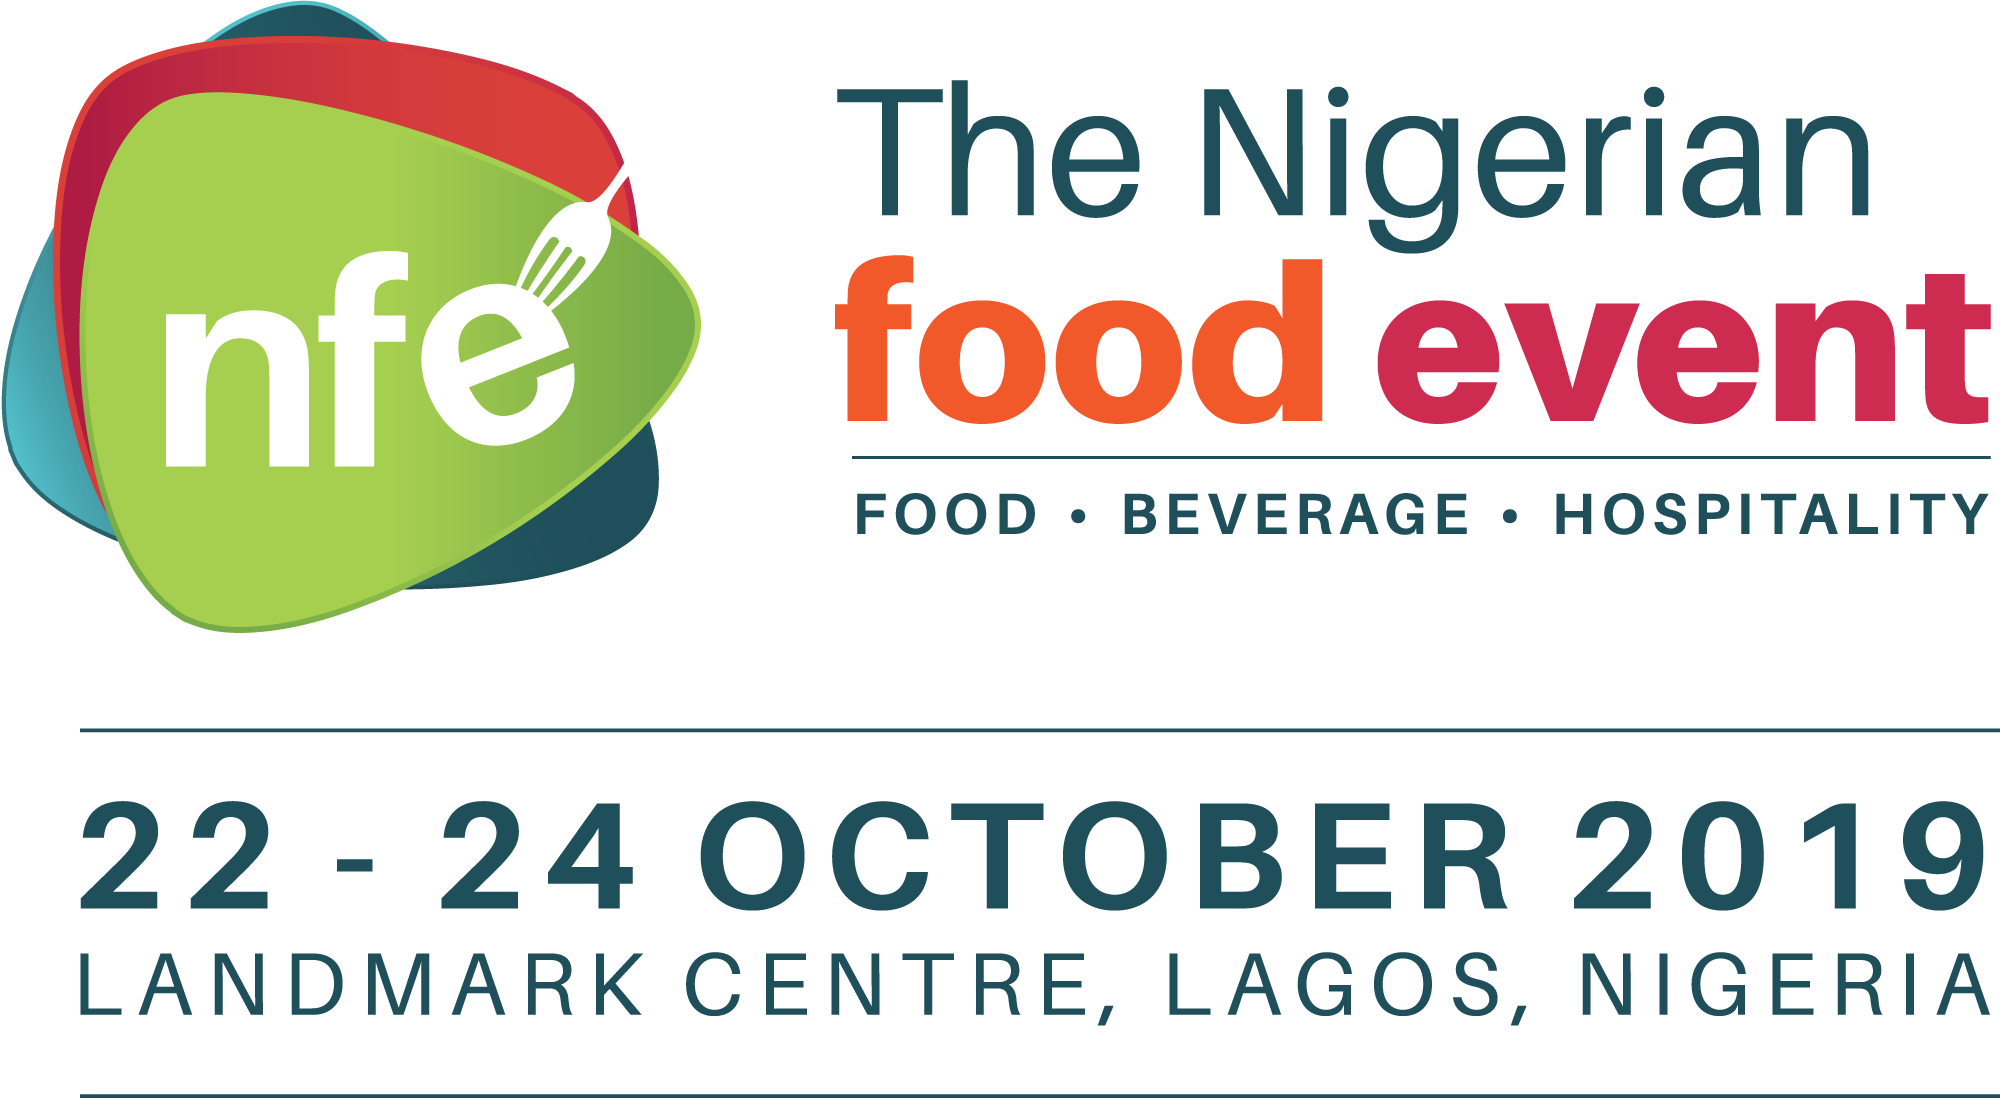 The Nigerian Food Event